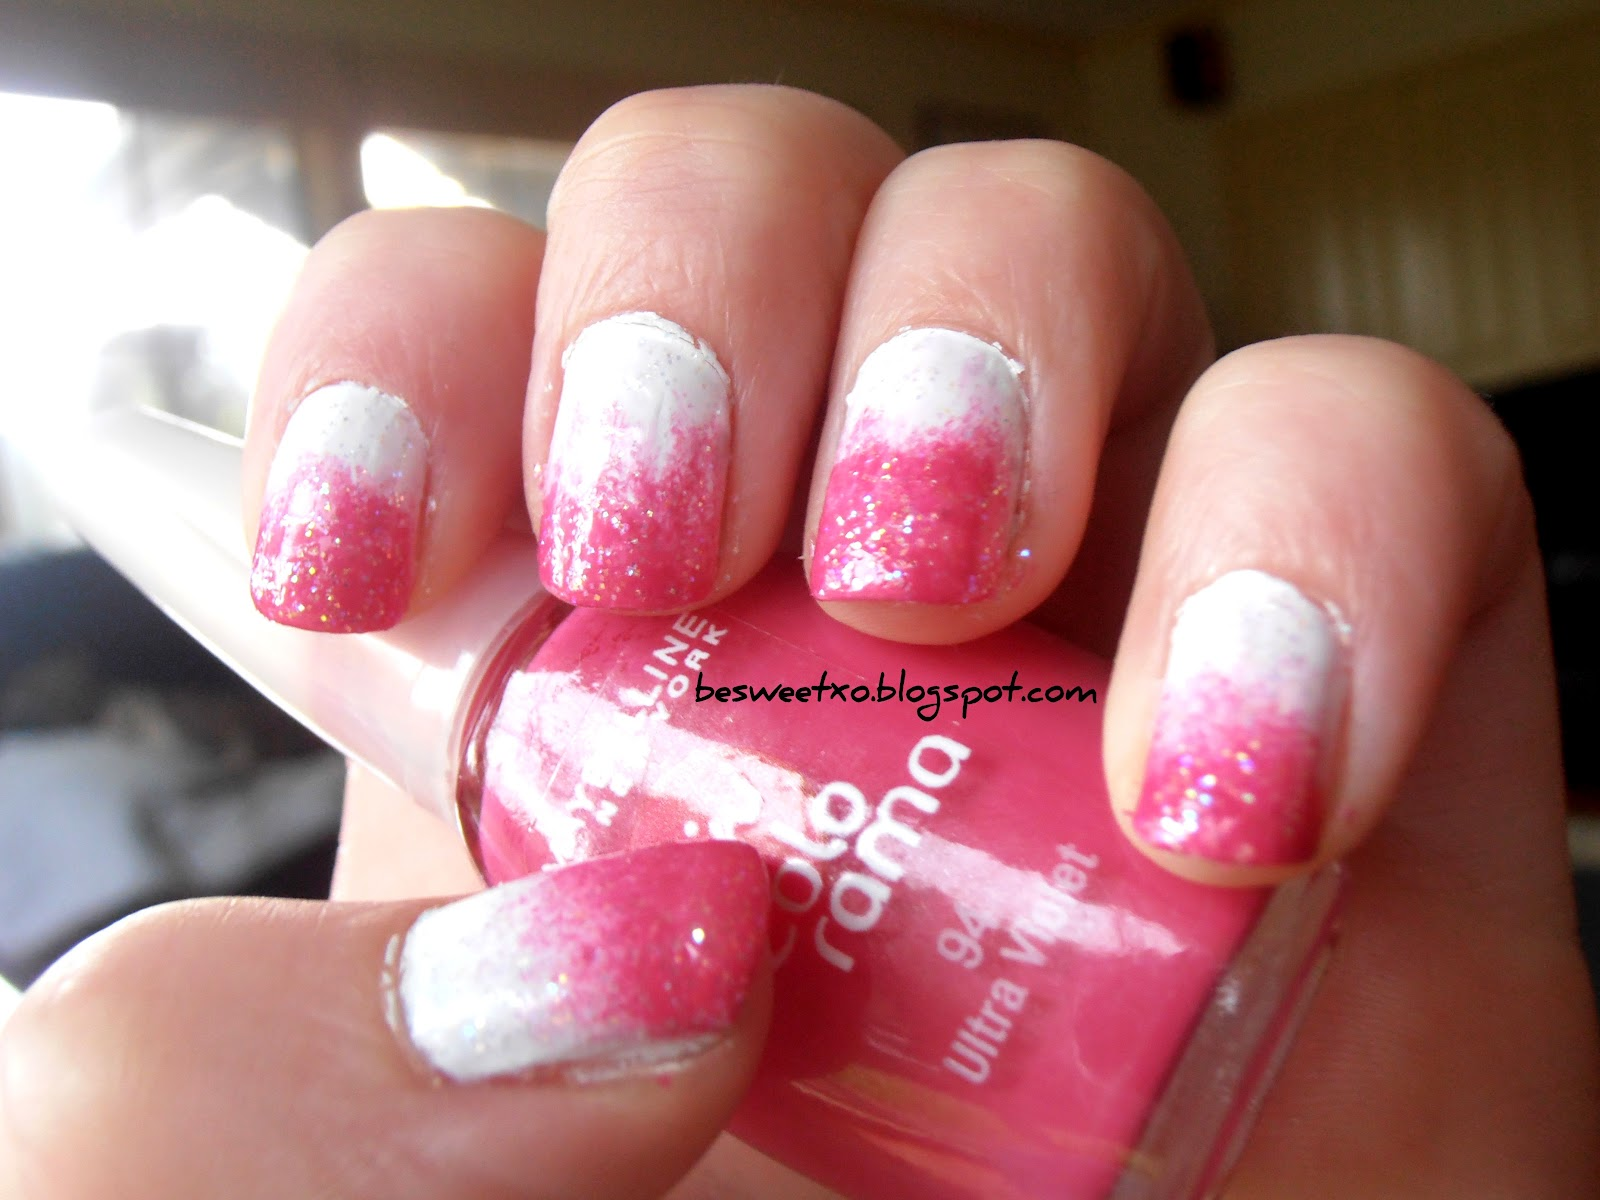 besweetxo: Pink To White Ombre Nails